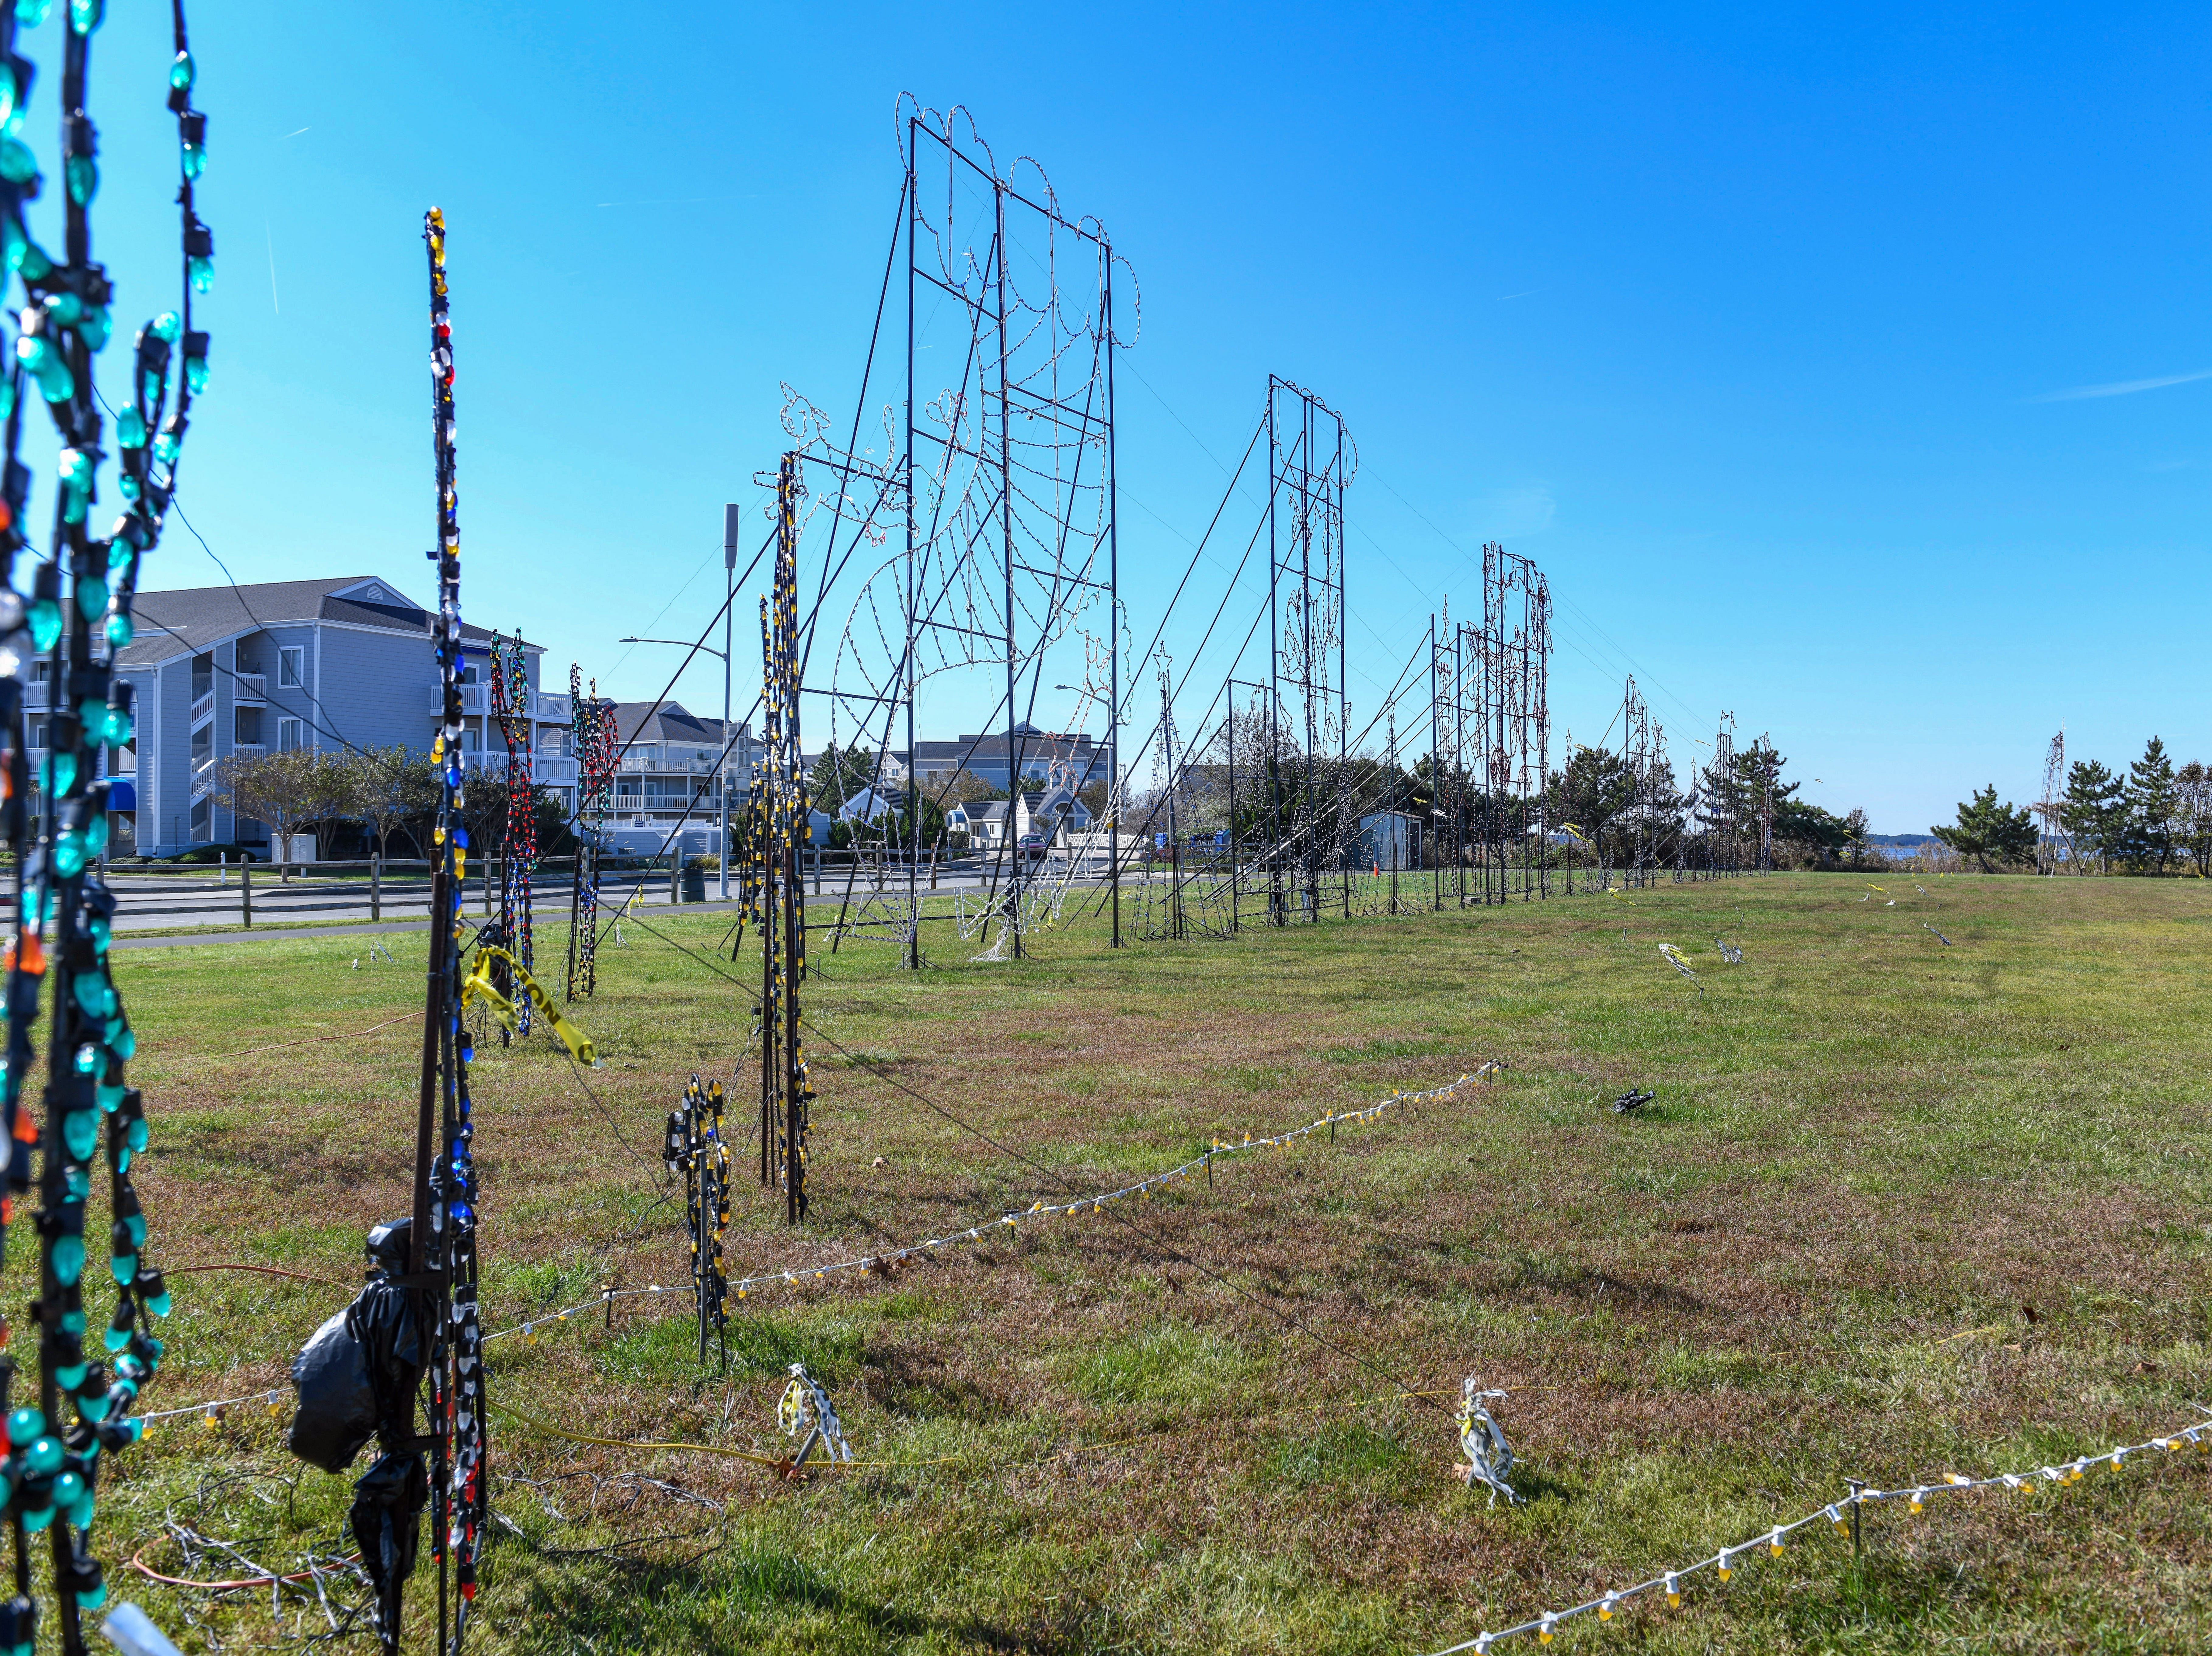 Preparations for Winterfest are well underway weeks before the event, as light displays sit ready in Ocean City's Northside Park on Monday, Oct 22, 2018.